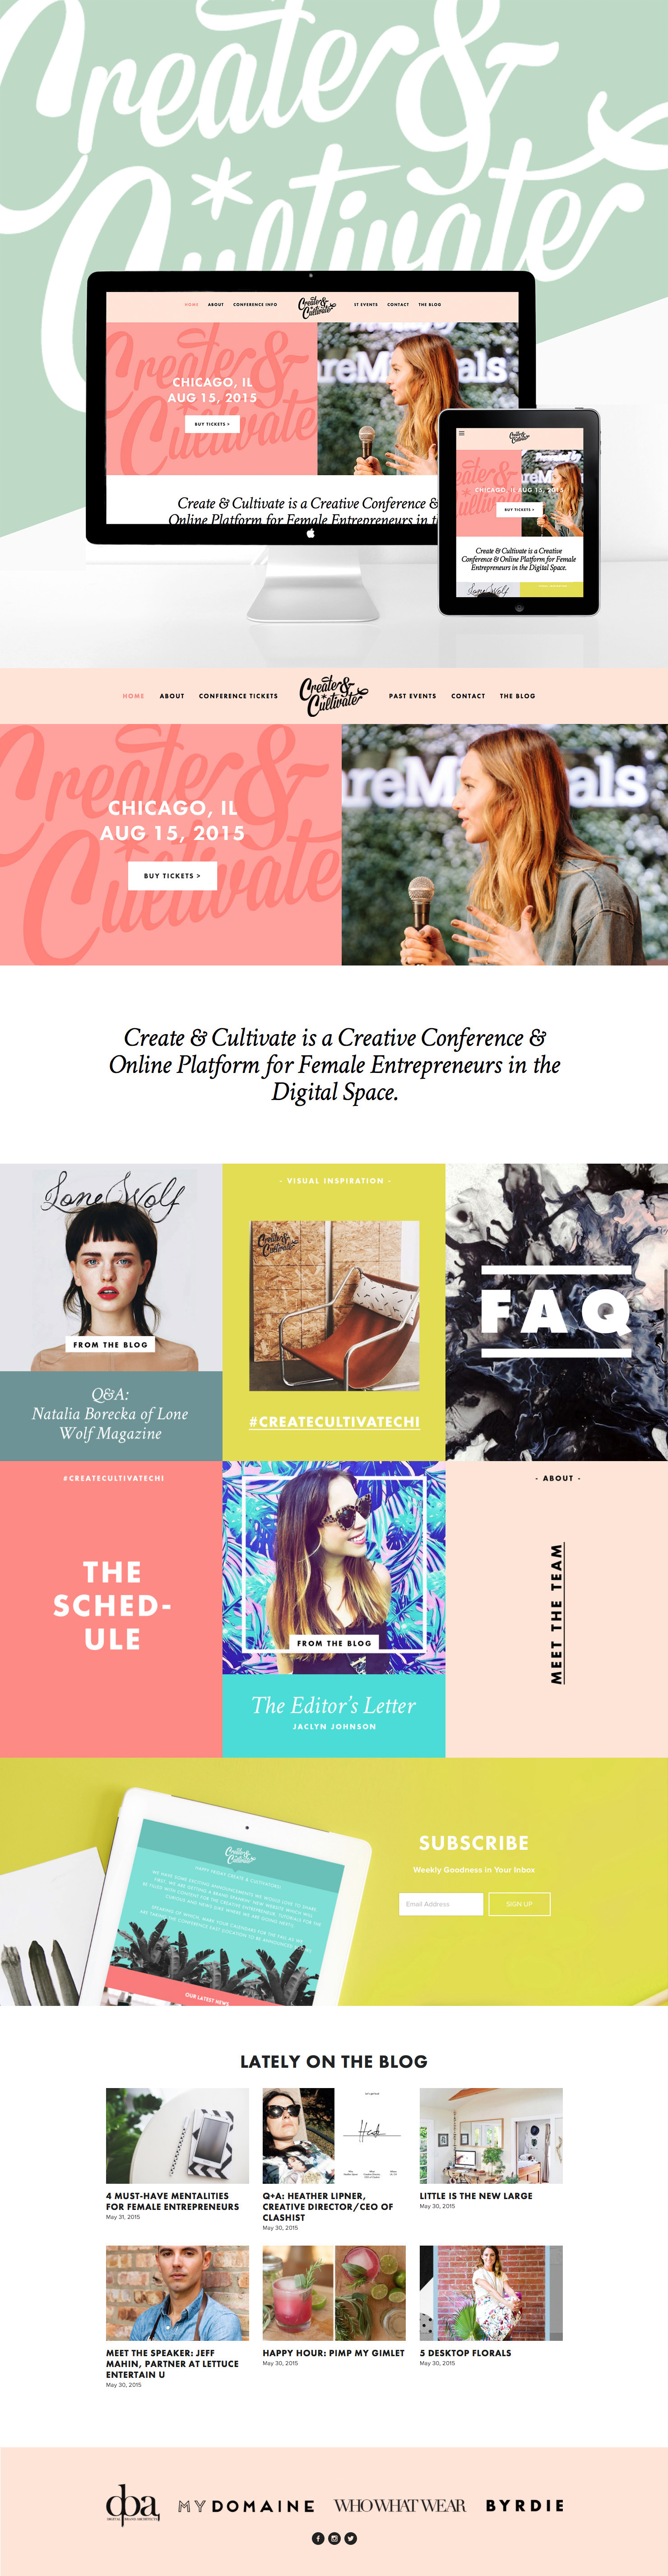 CREATE & CULTIVATE website by GO LIVE HQ